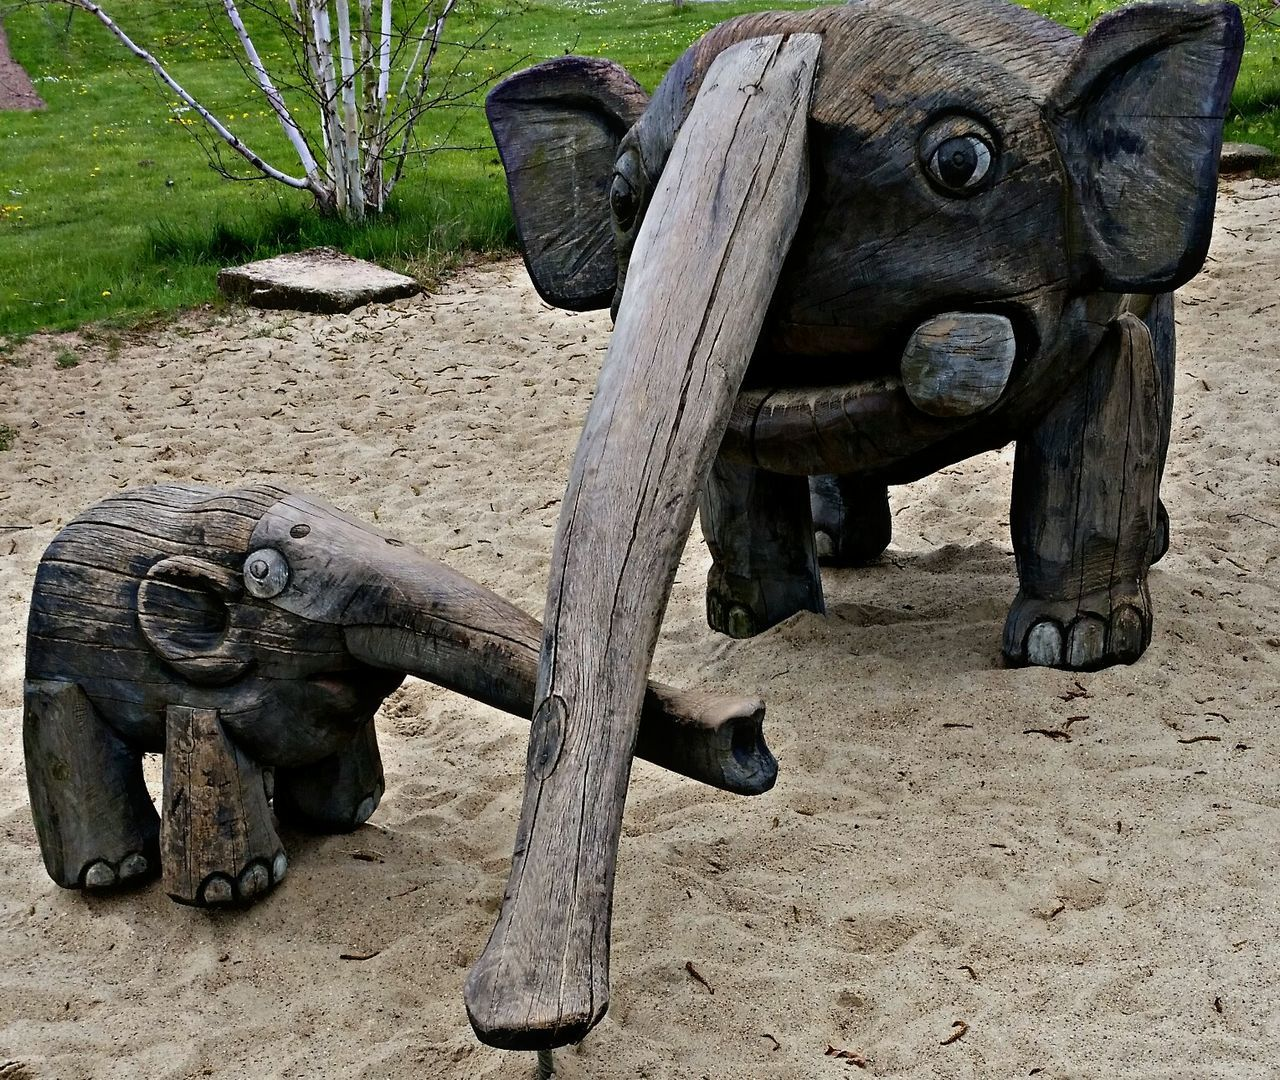 die Rüsselfamily ... the trunk family :-) Holzarbeit Elefanten  Holz Kunst Wood Art Elephant Art Take Photo EyeEm Gallery I Like This EyeEm Eyem Gallery Beliebte Fotos Check This Out The Week On Eyem Hello World Taking Photos EyeEmBestPics Eyemphotography Best Of EyeEm Wood Animals Holztiere Eyeemphotography Take Photos Eyeem Photography I Like It Beautiful